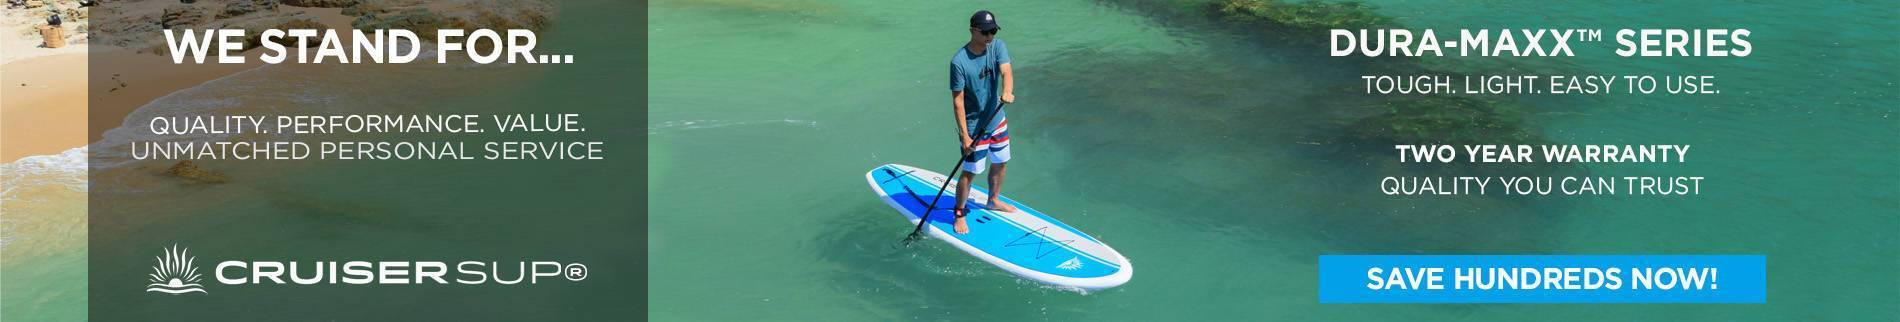 Paddle Board Users Over 220 lbs